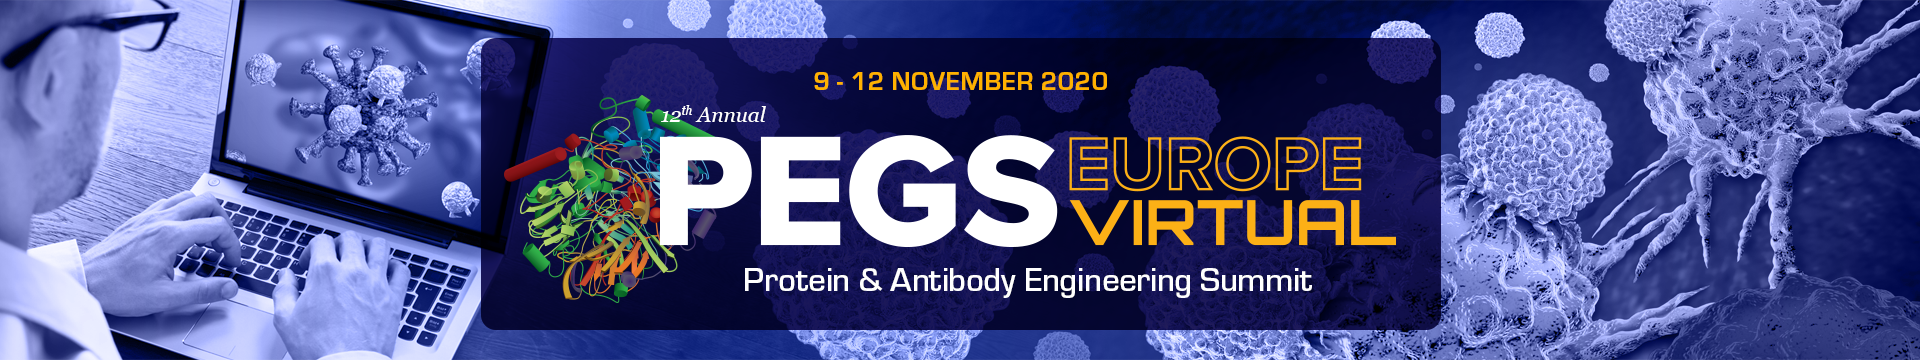 PEGS Europe Protein and Antibody Engineering Summit